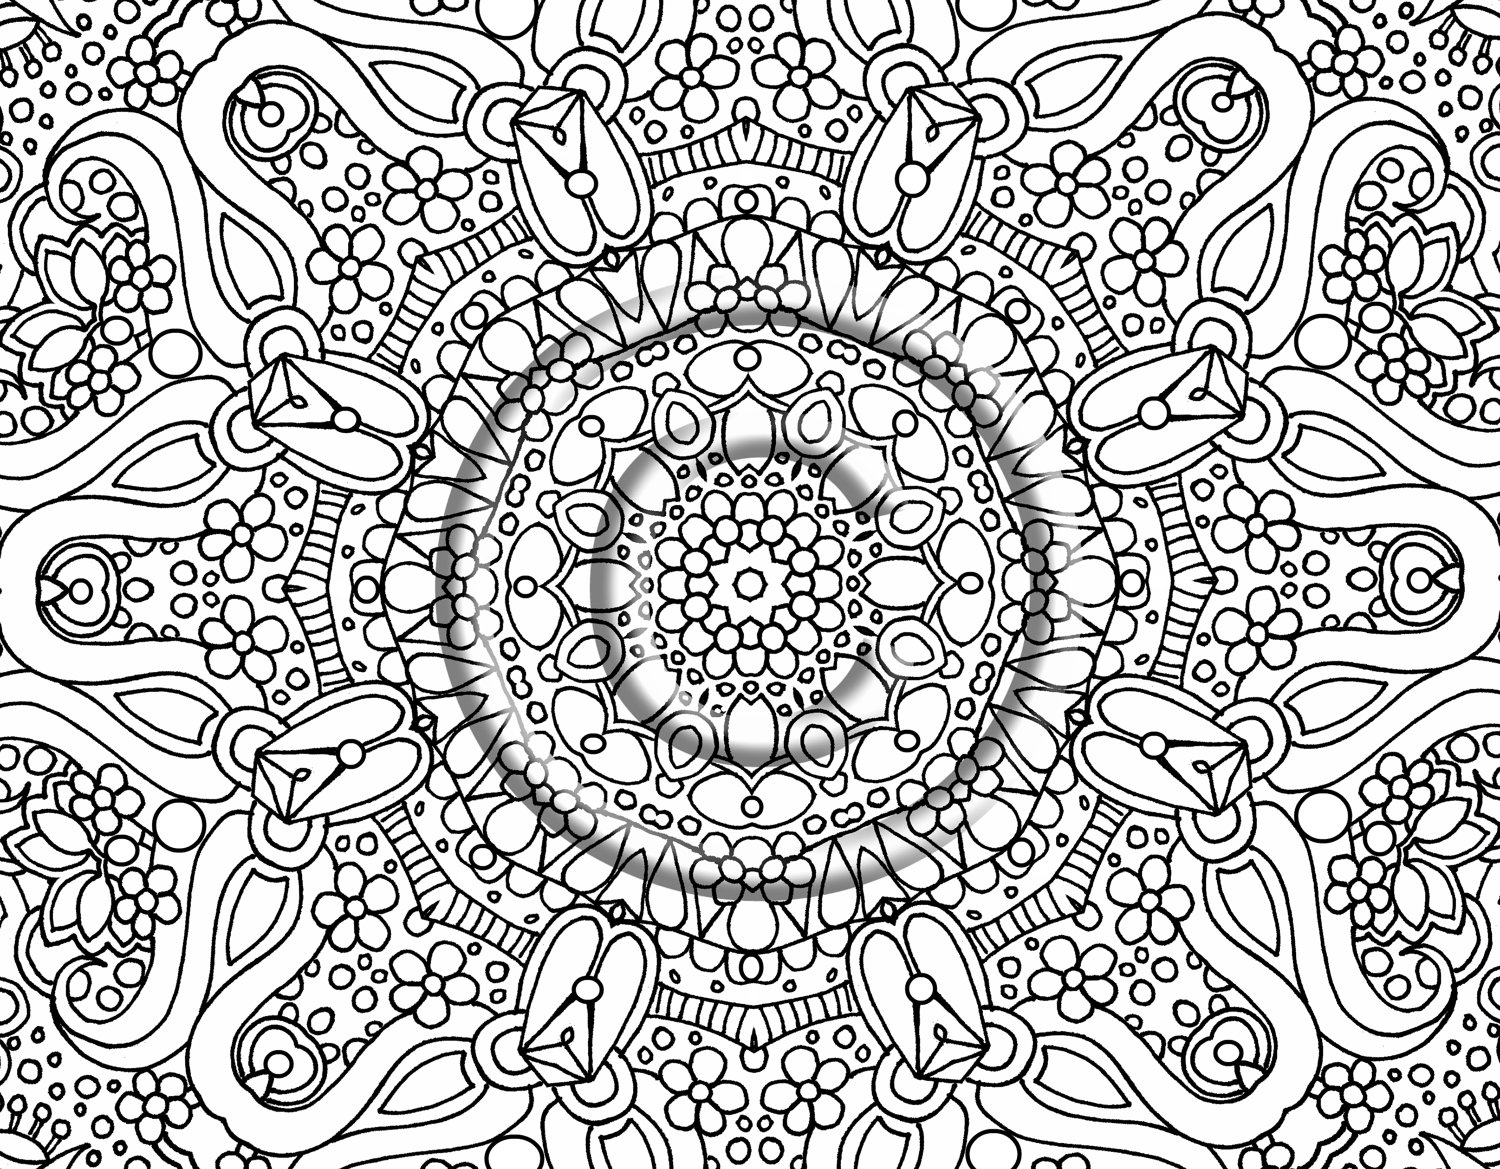 1500x1169 Free Printable Abstract Coloring Pages For Adults